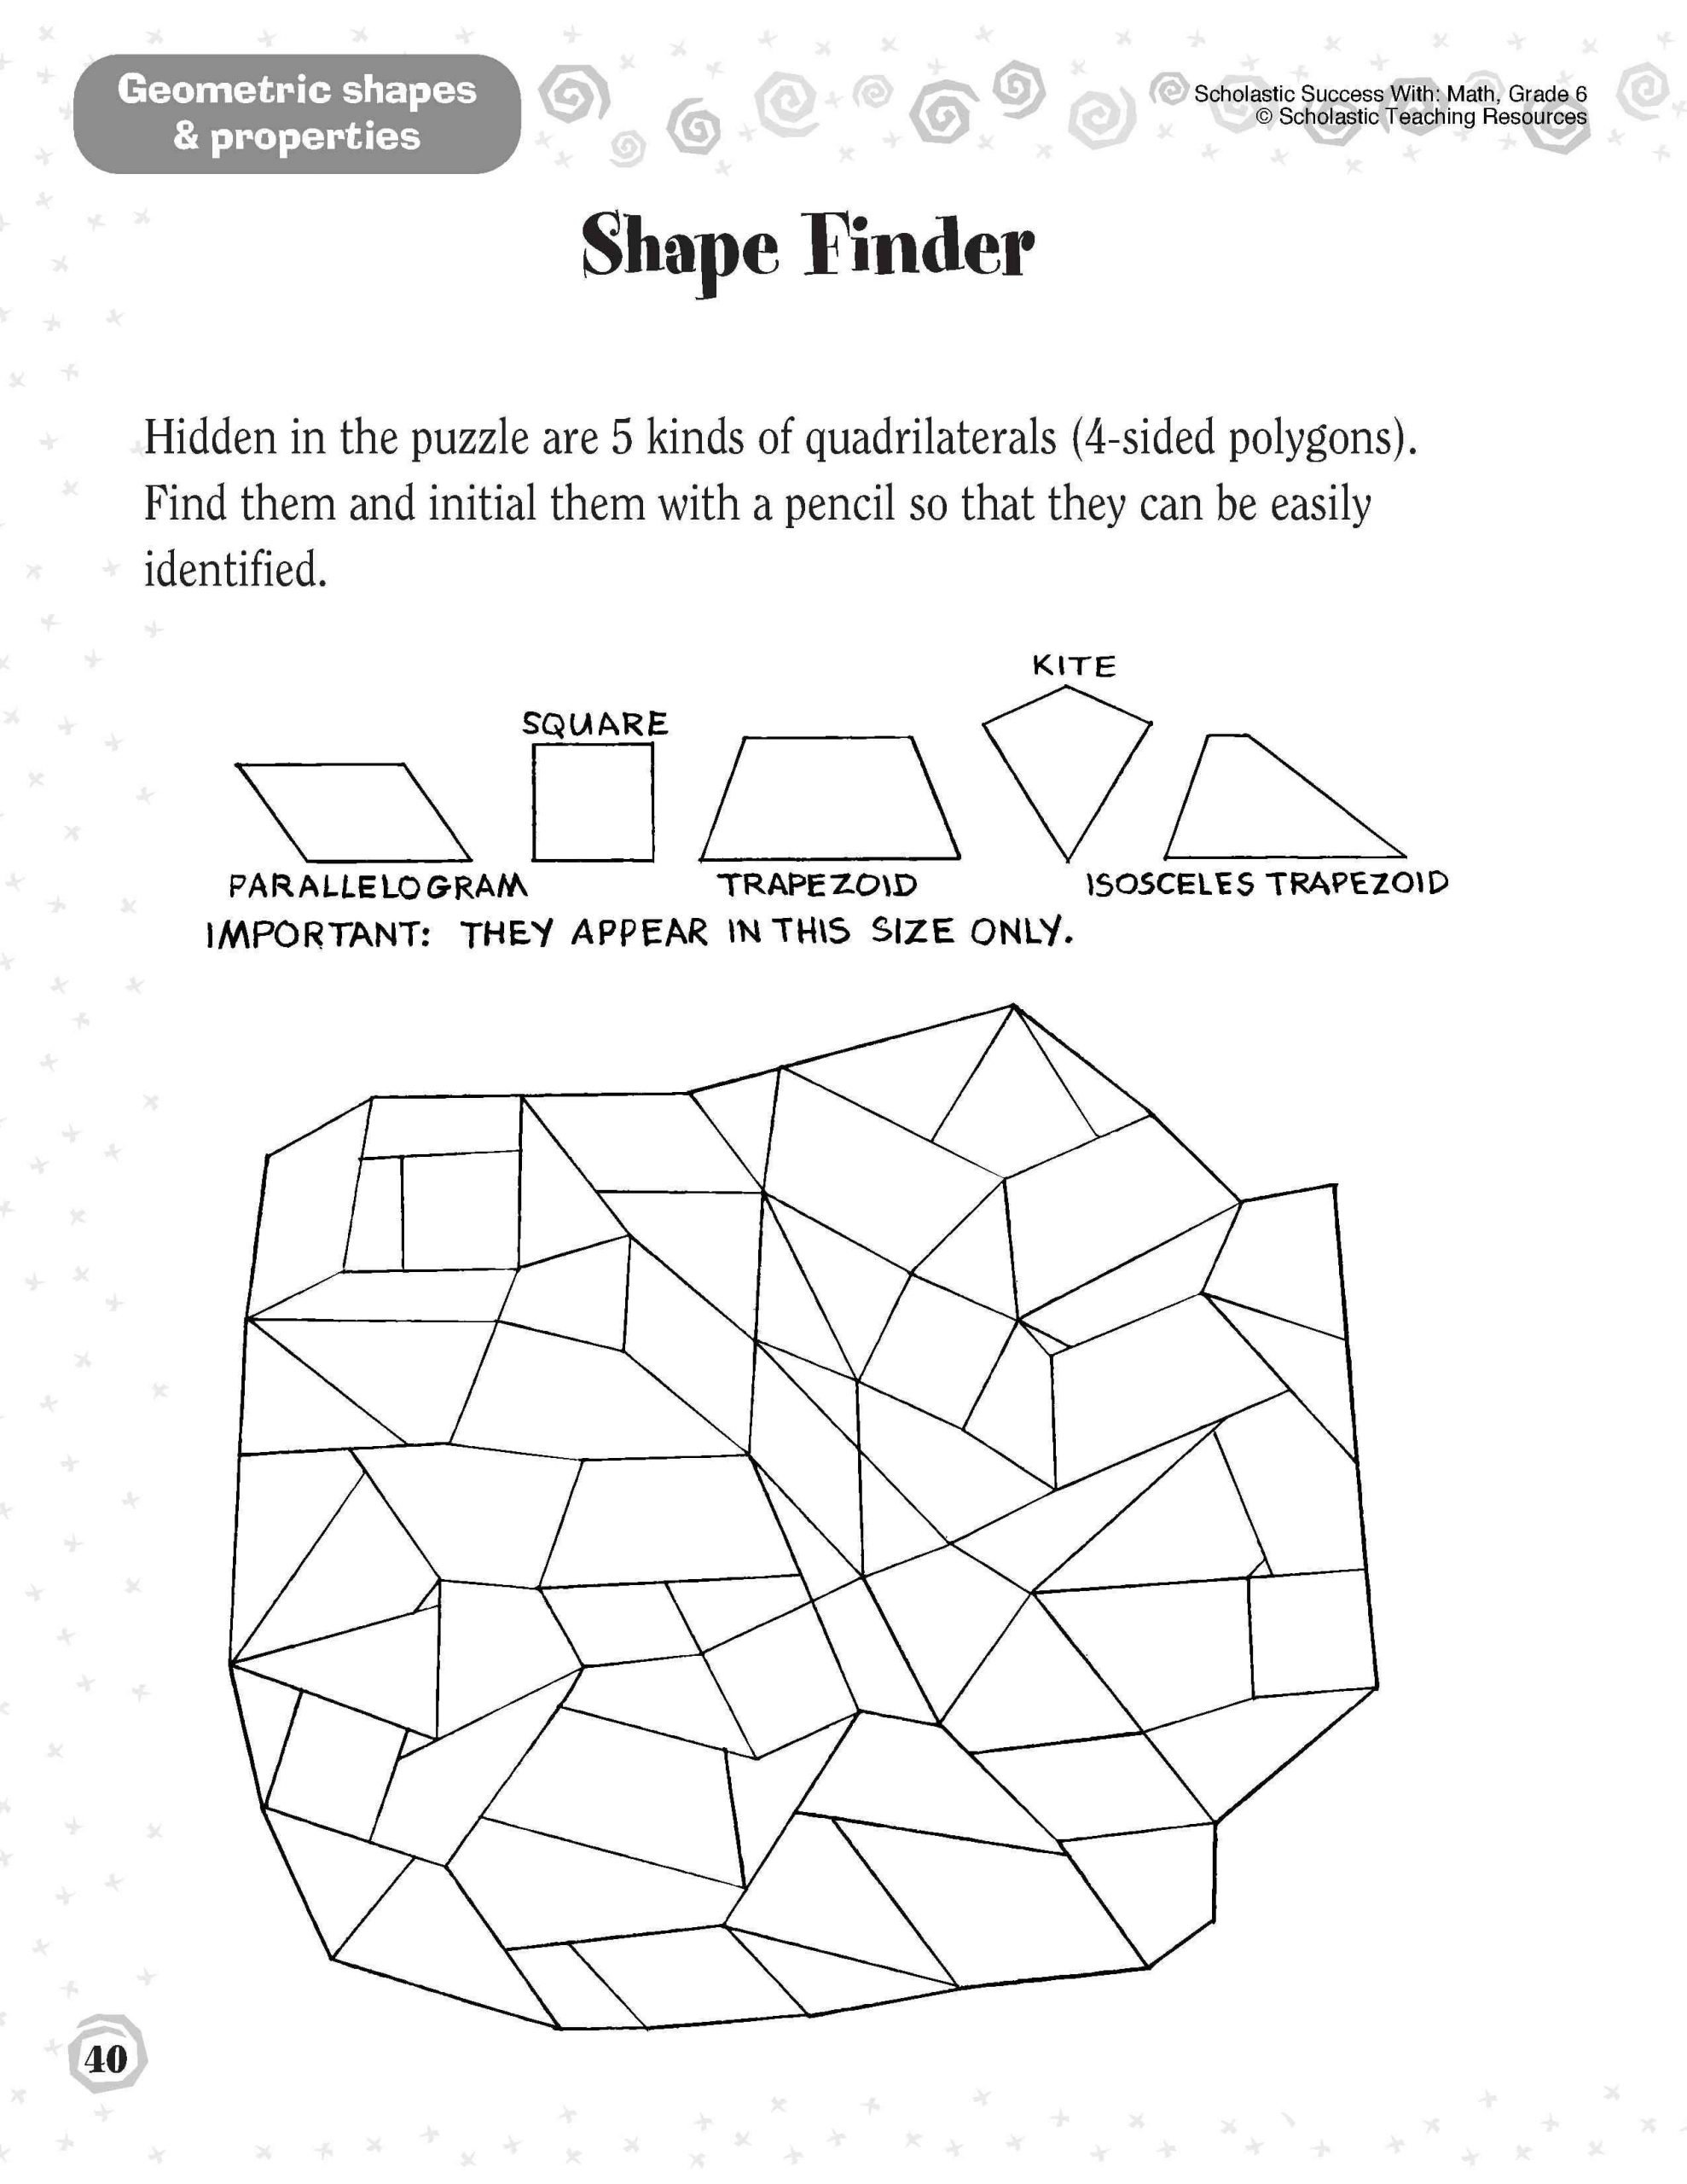 Scholastic Math Worksheets Five Ways to Make Geometry Memorable